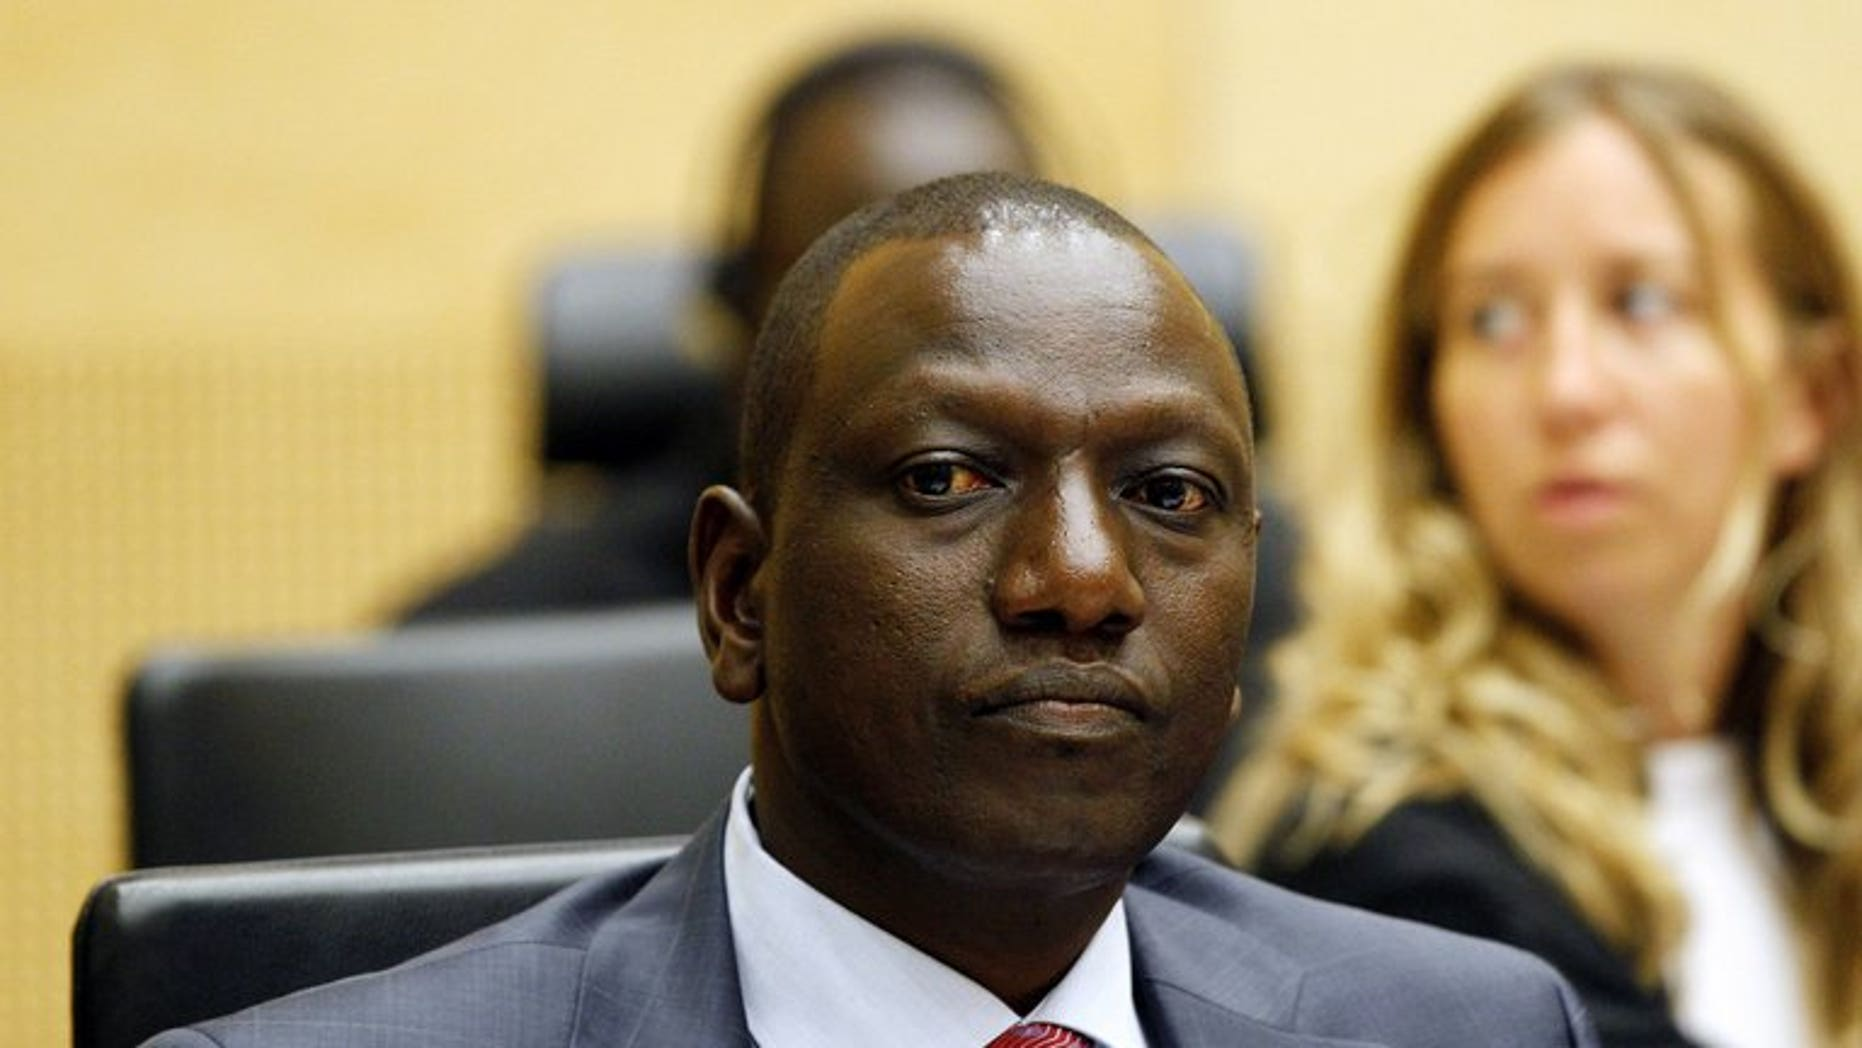 Former Kenyan Education Minister William Ruto sits in the courtroom of the International Criminal Court in The Hague on September 1, 2011. The ICC has suspended a decision allowing Ruto to be absent from parts of his trial next month for crimes against humanity.